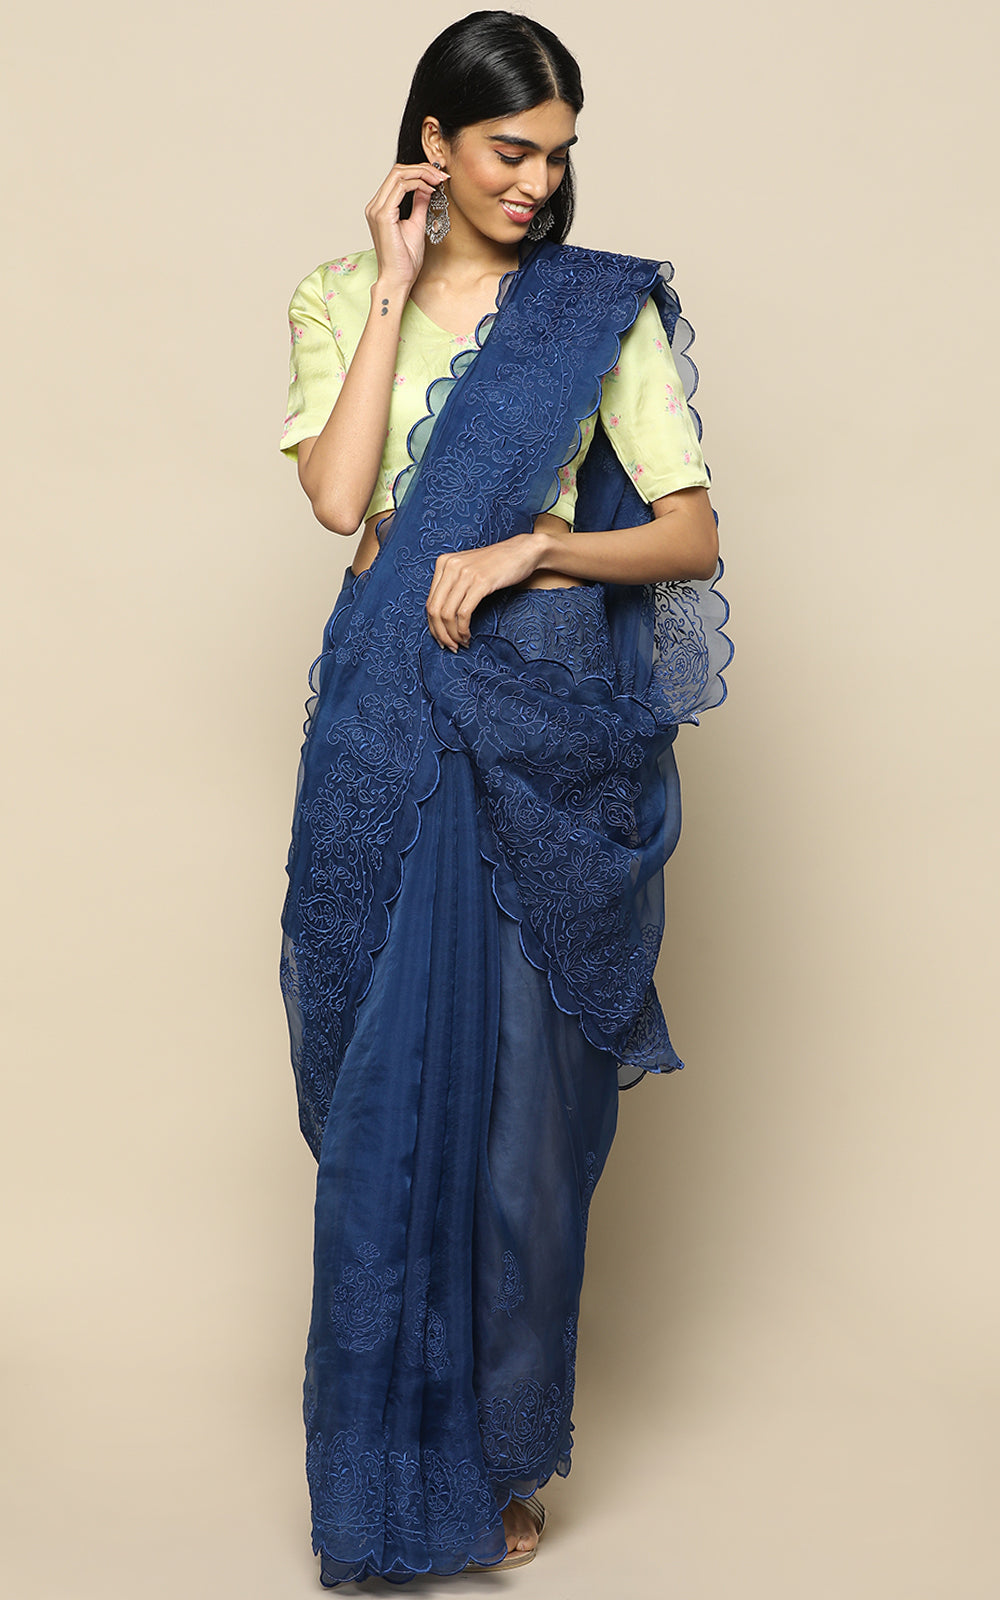 DARK BLUE ORGANZA SILK SAREE WITH EMBROIDERY